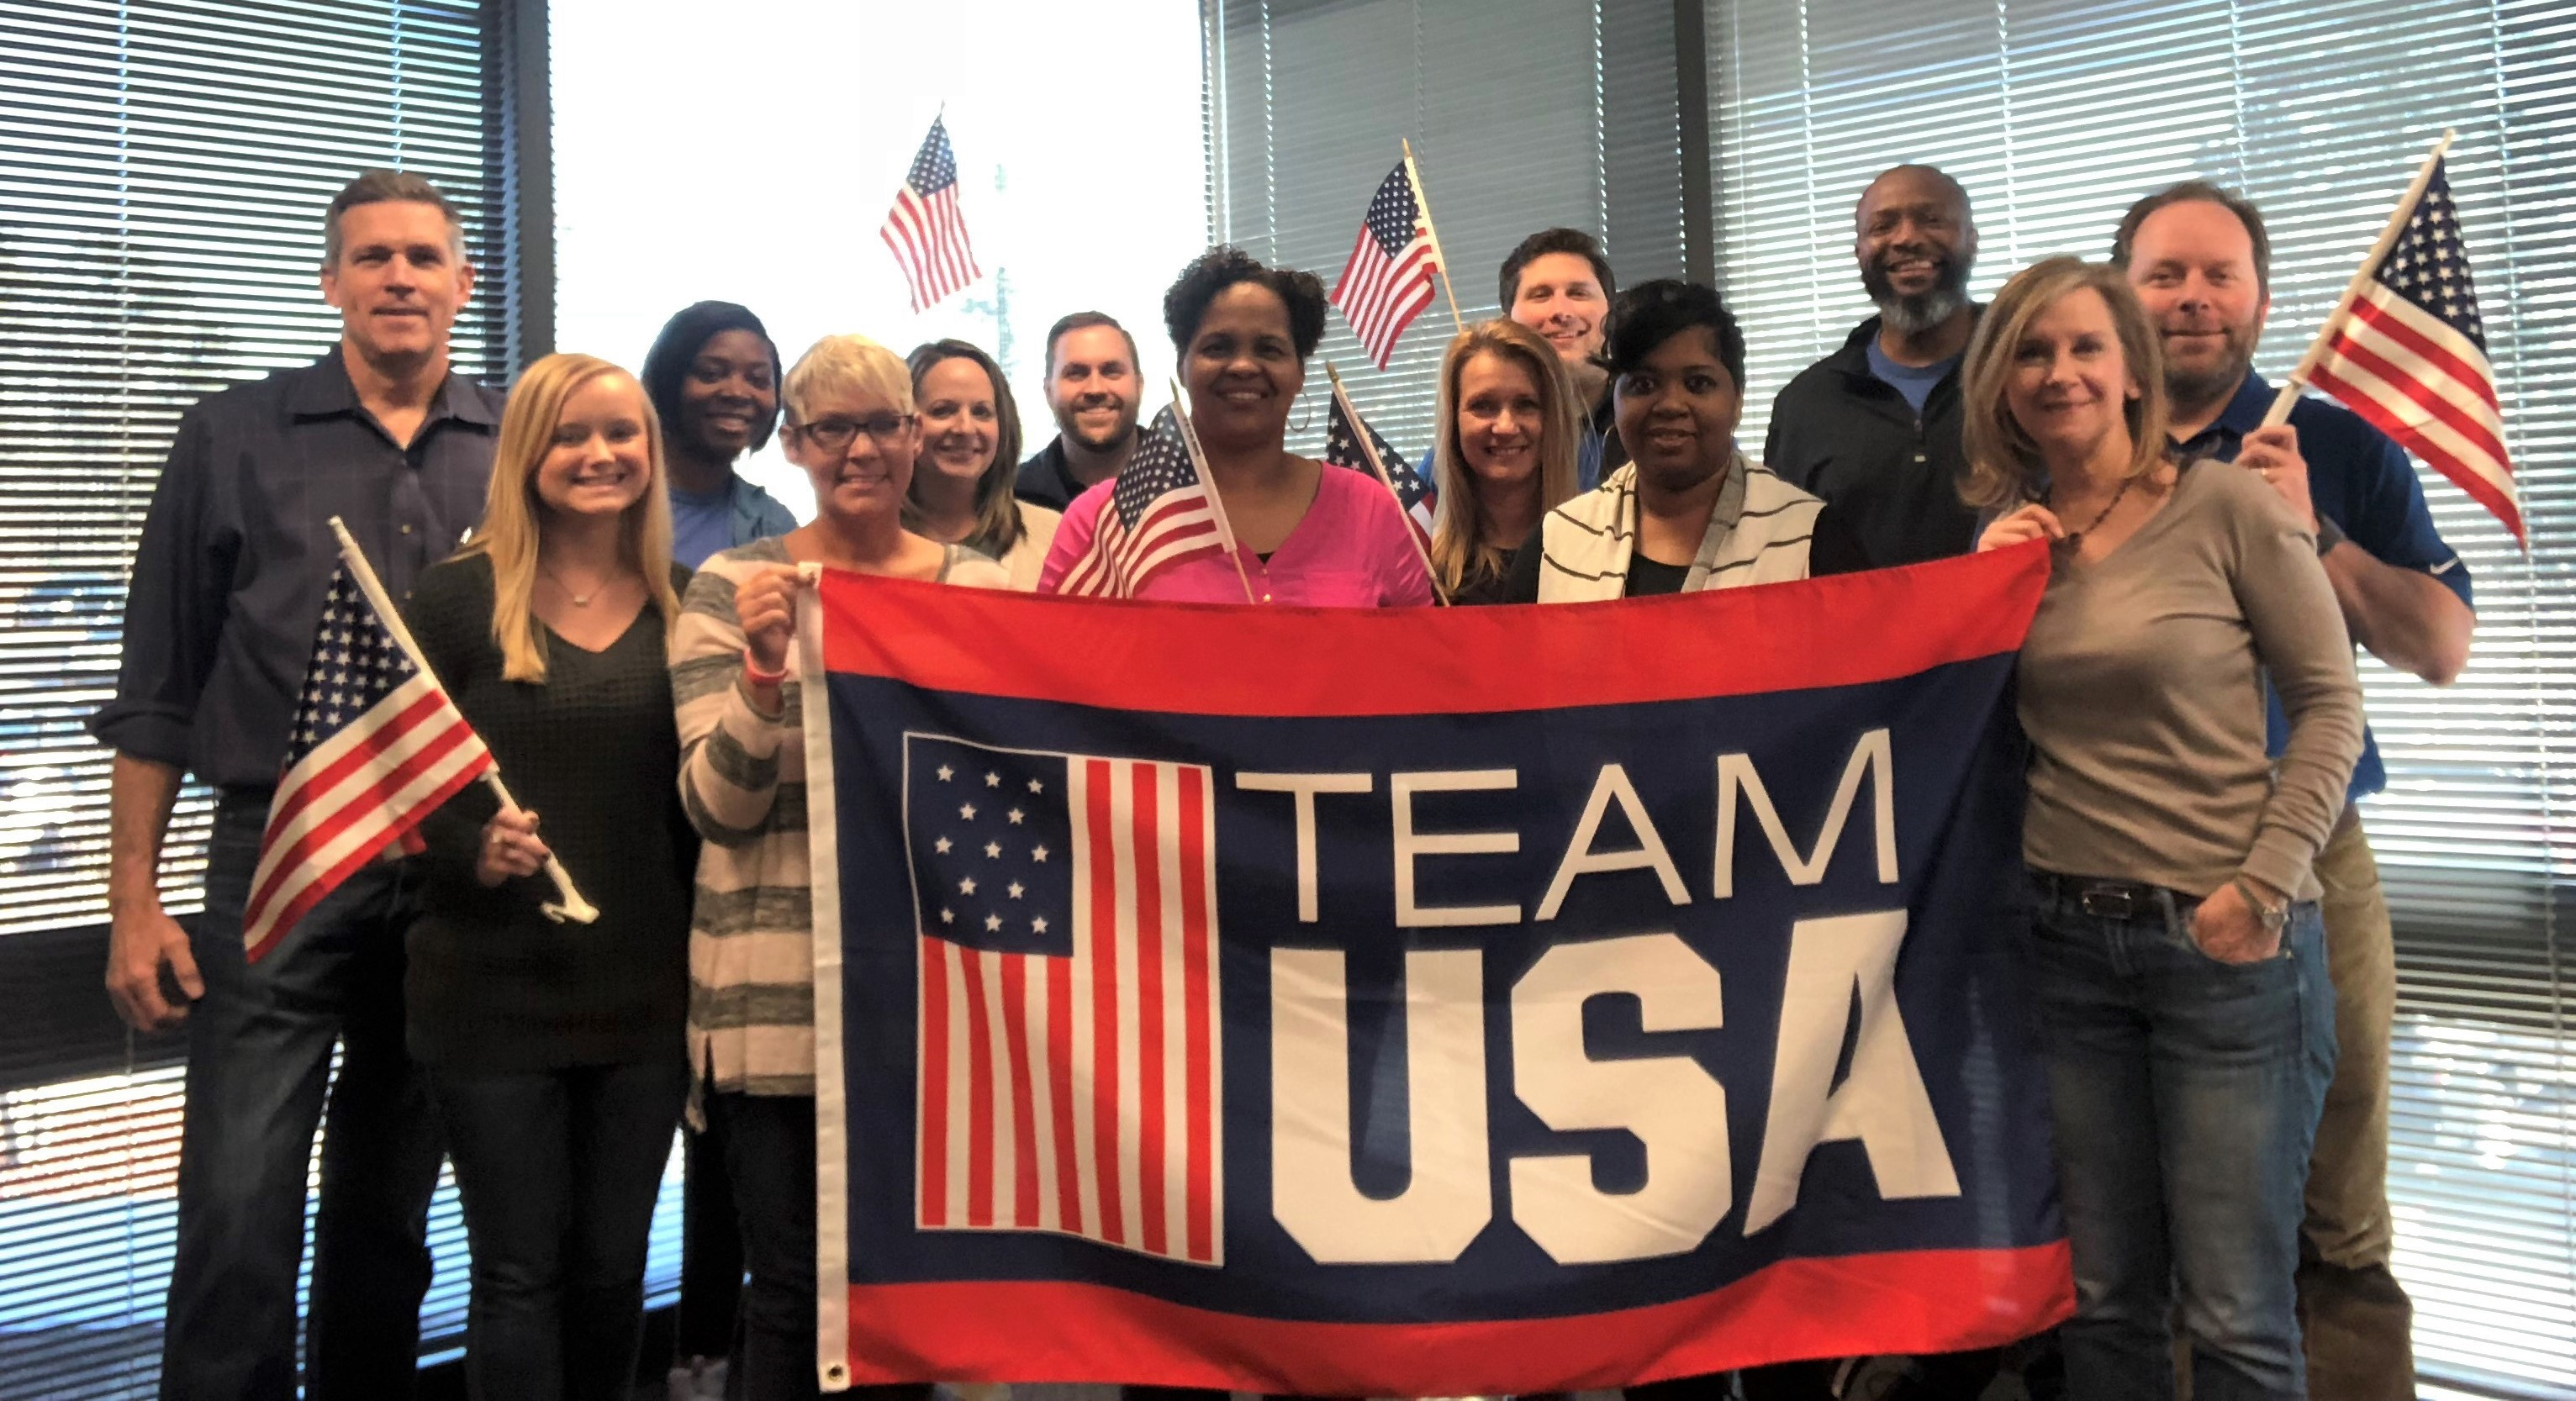 PPH supports Team USA and Dr. Weinstein, Head Team Physician, at the 2018 Winter Olympics!